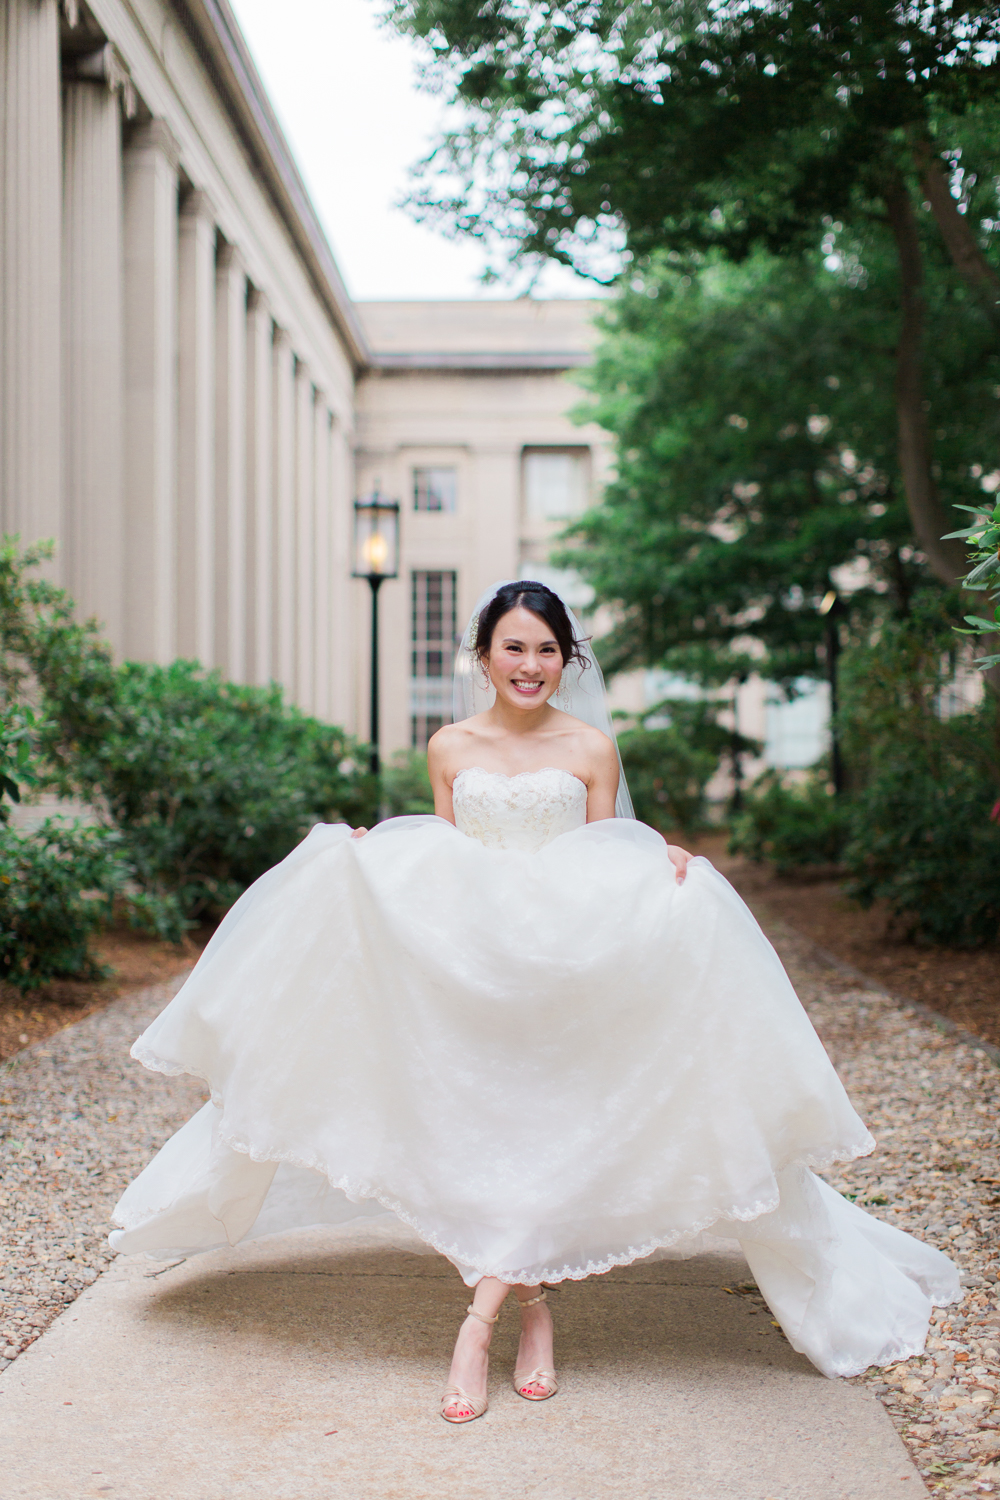 hyatt-regency-cambridge-wedding-photography-52